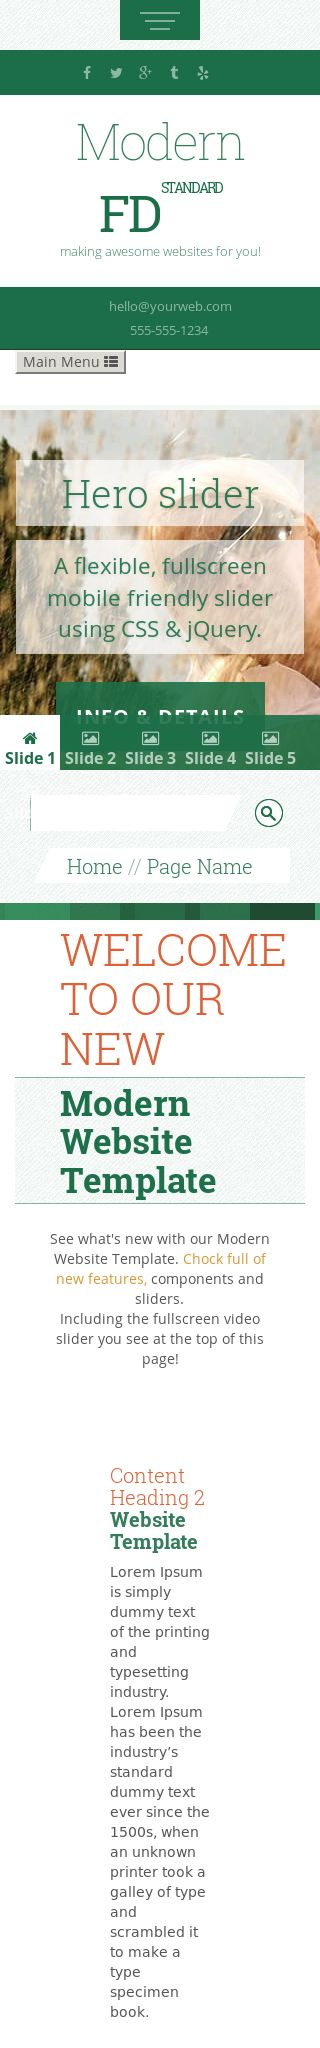 Mobile: Golf Web Template